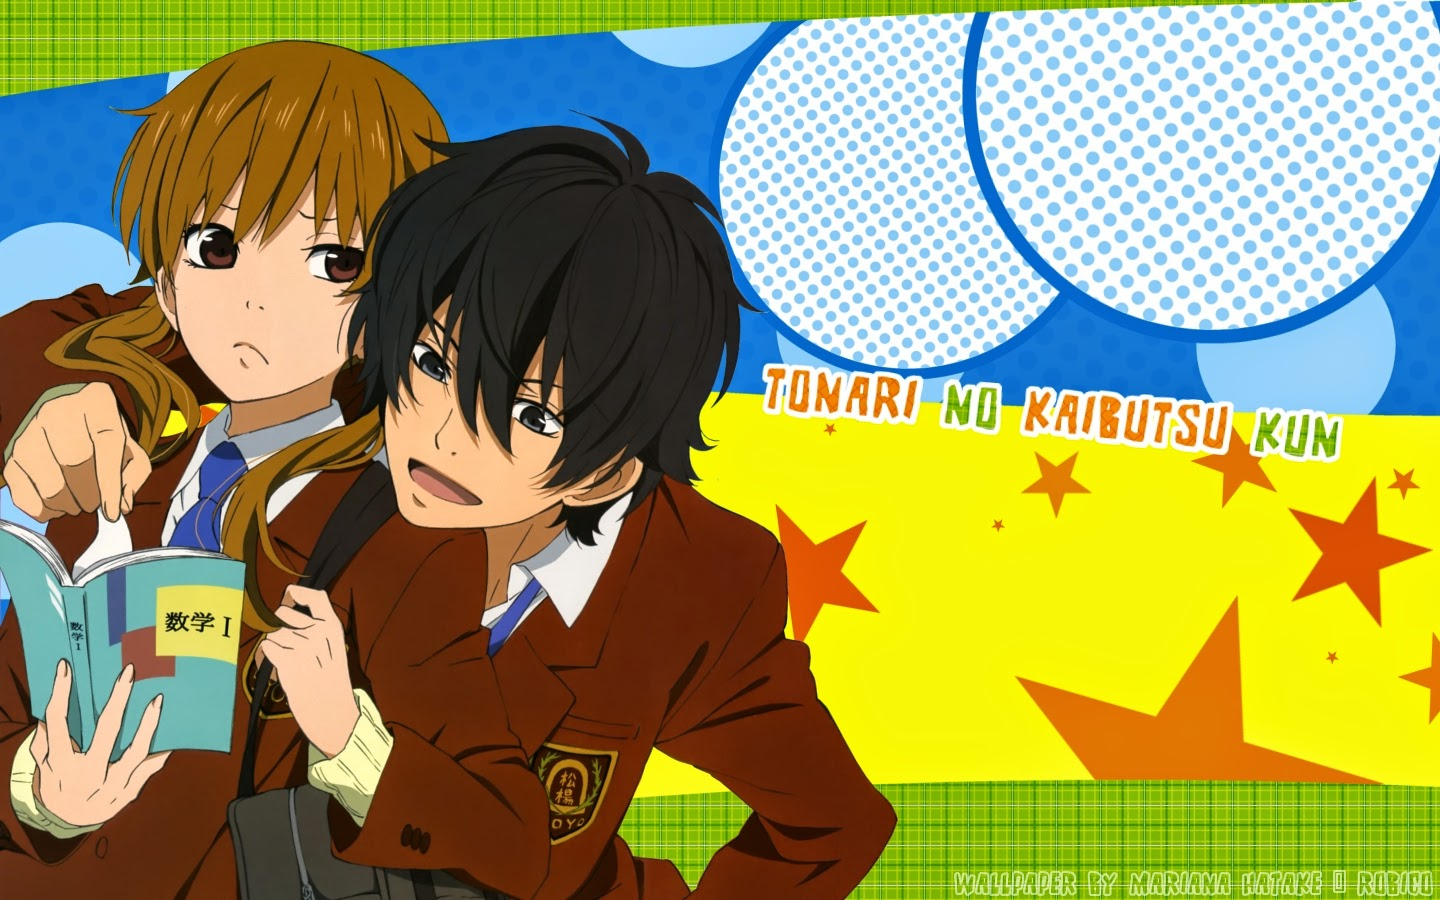 review anime tonari no kaibutsu kun